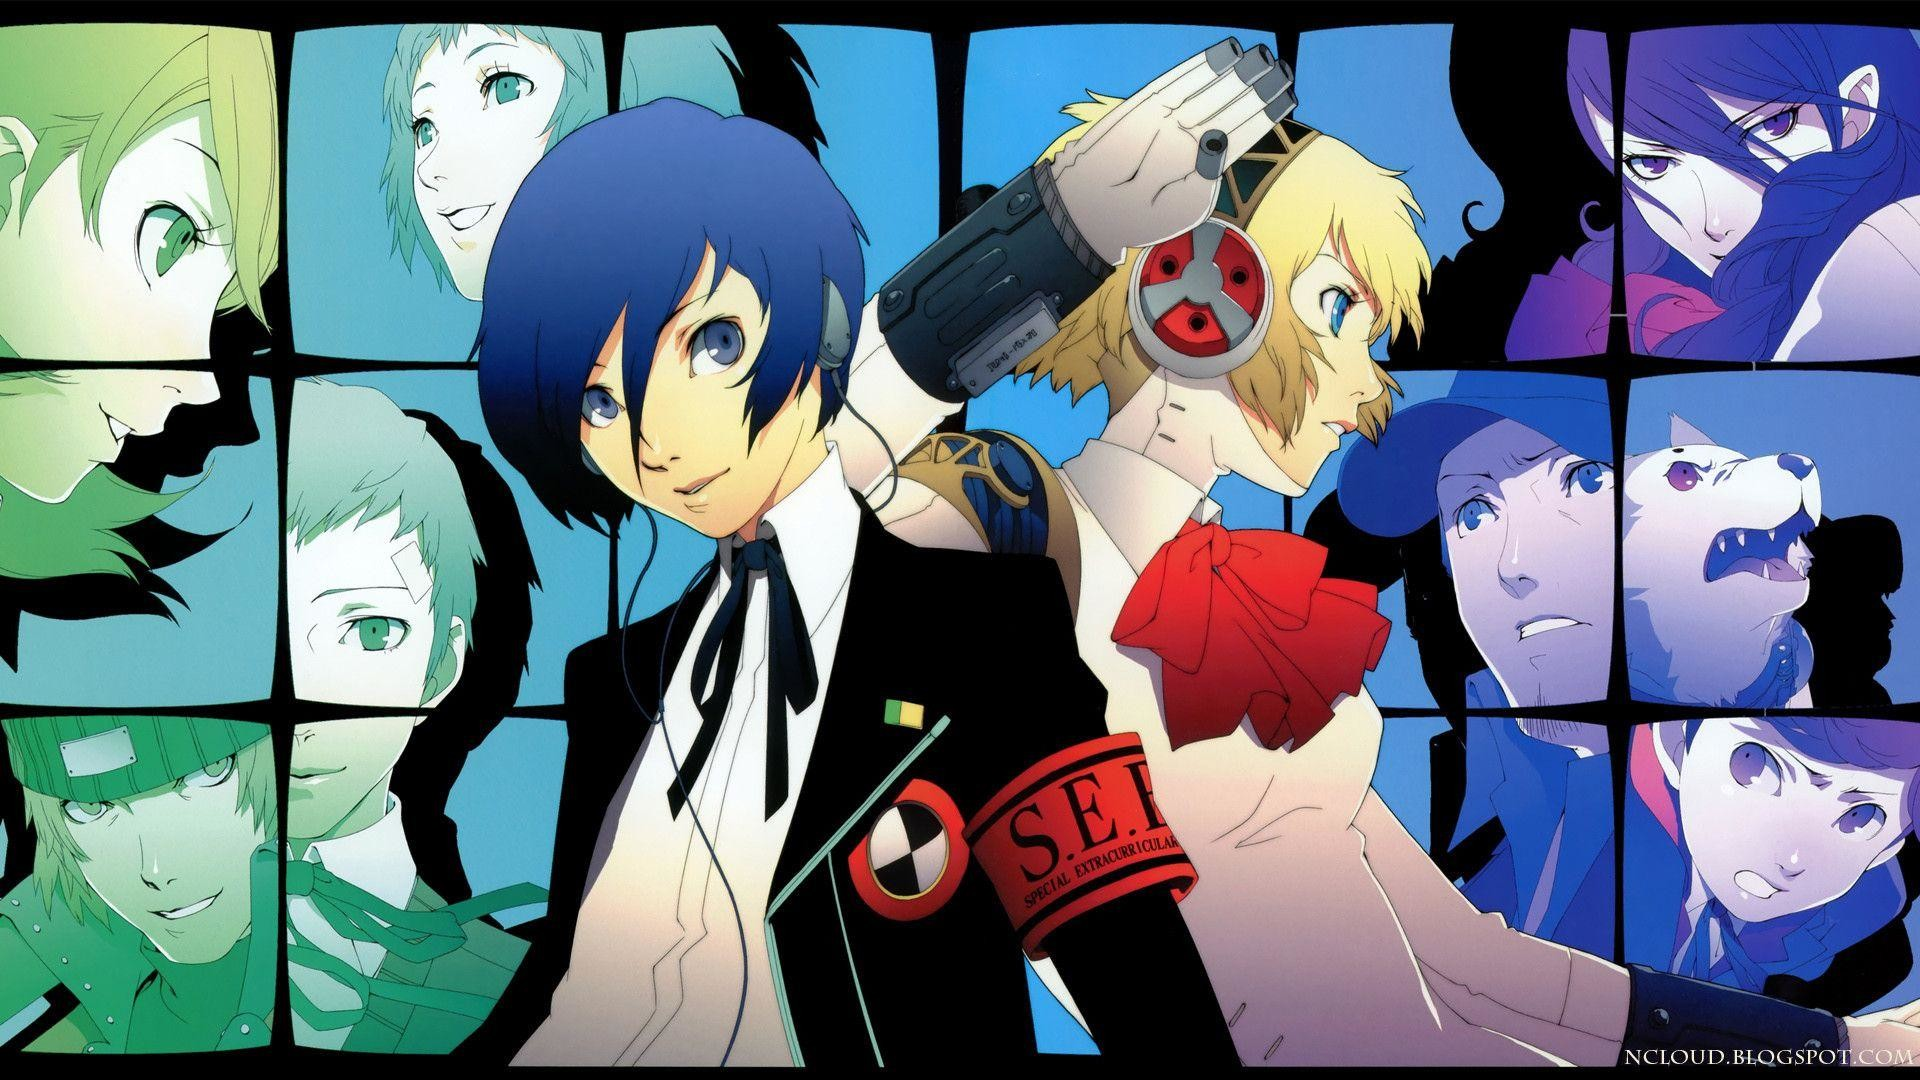 Res: 1920x1080, Games Movies Music Anime: Persona 3 FES coming to NA PSN (PS2 .